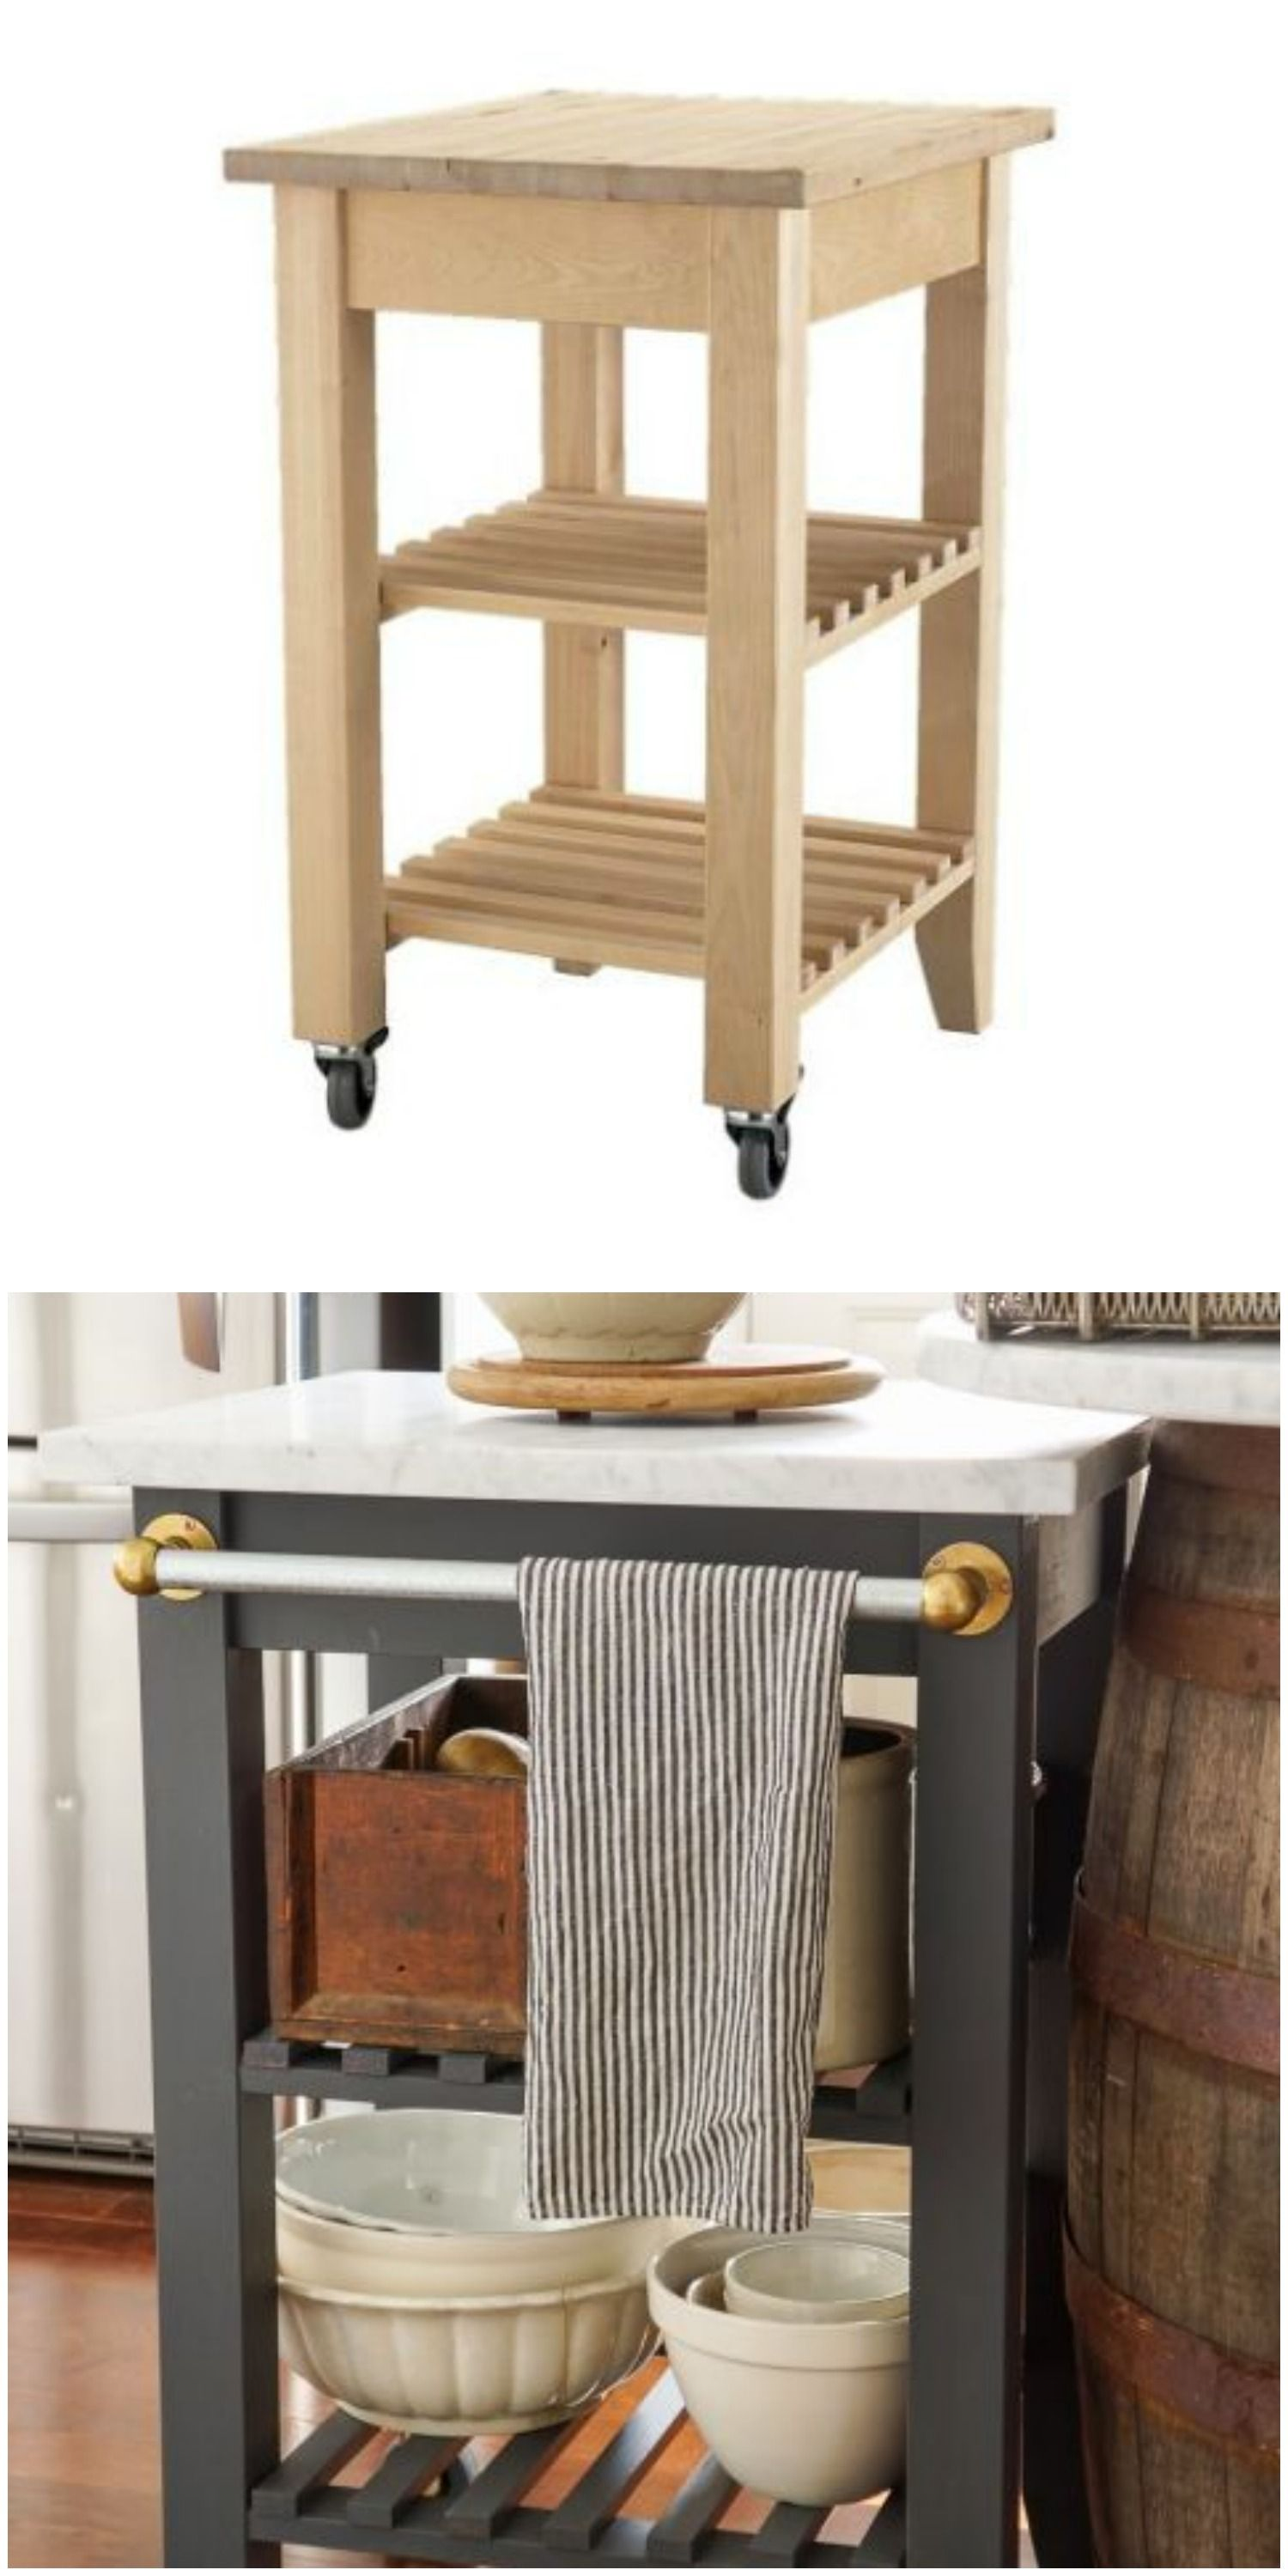 the 25 coolest ikea hacks we've ever seen | portable kitchen